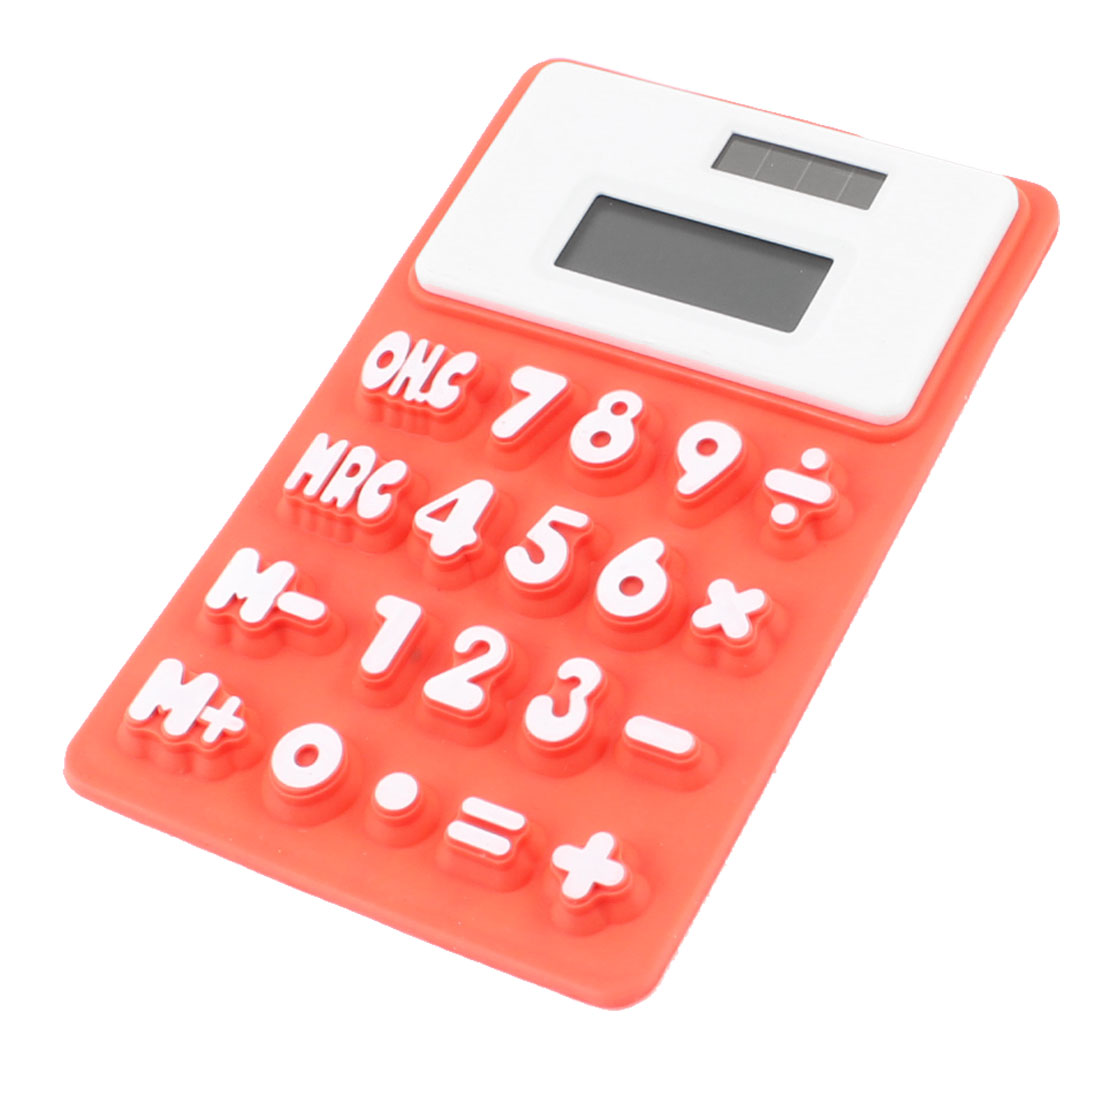 Household Rectangle Shaped Soft Silicone Electronic Calculator White Orange